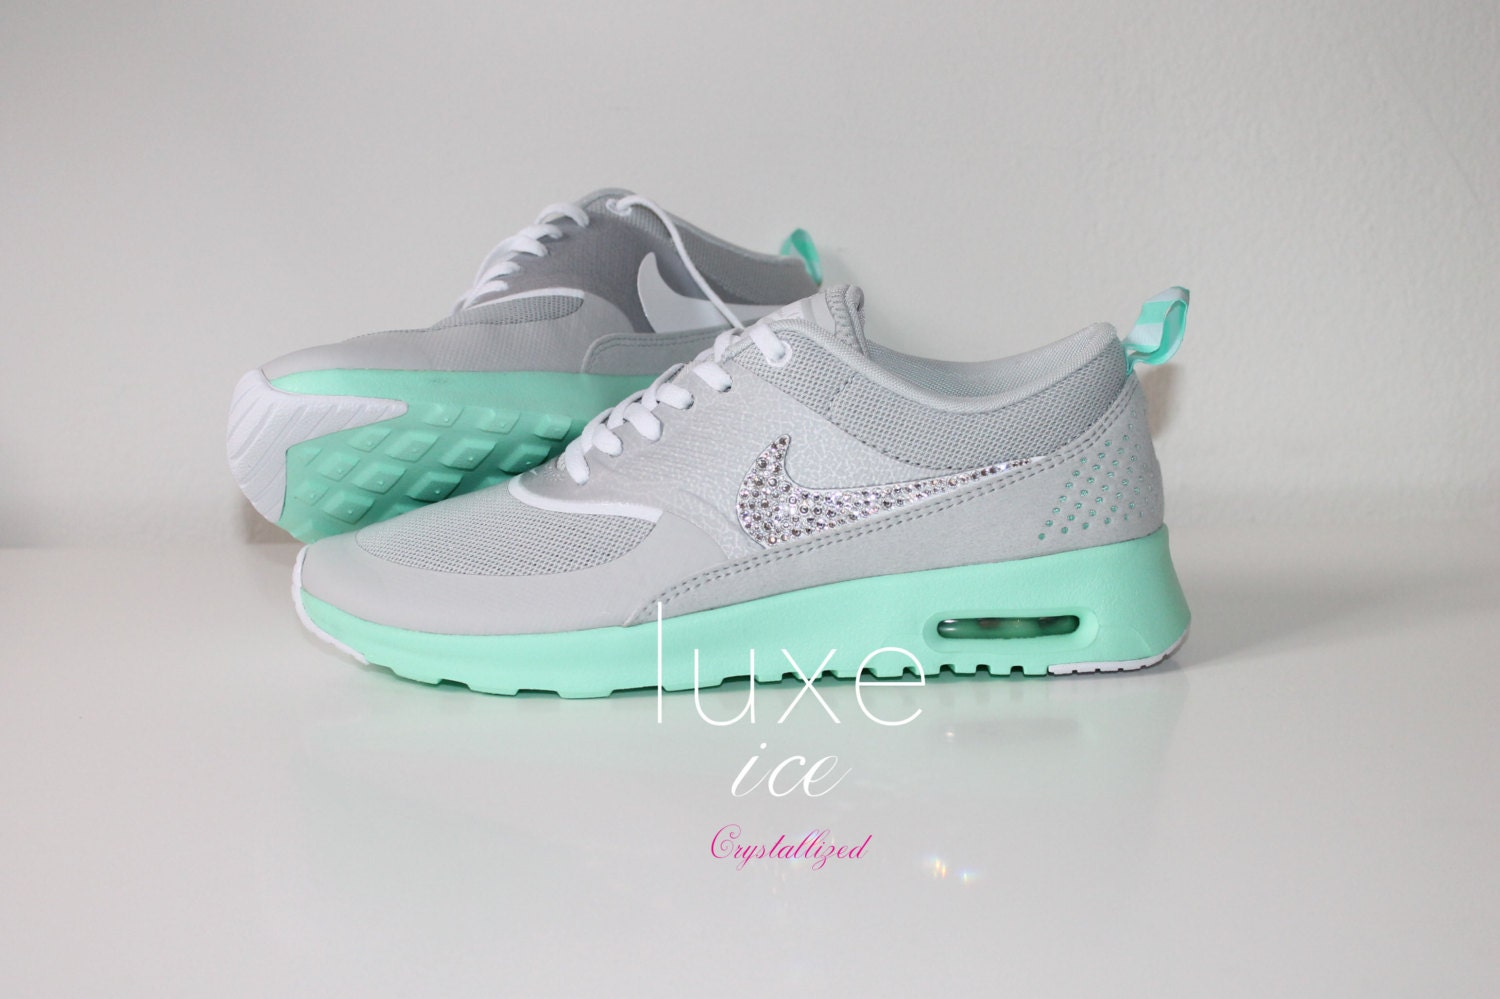 nike air max thea shoes w swarovski crystals detail by luxeice. Black Bedroom Furniture Sets. Home Design Ideas